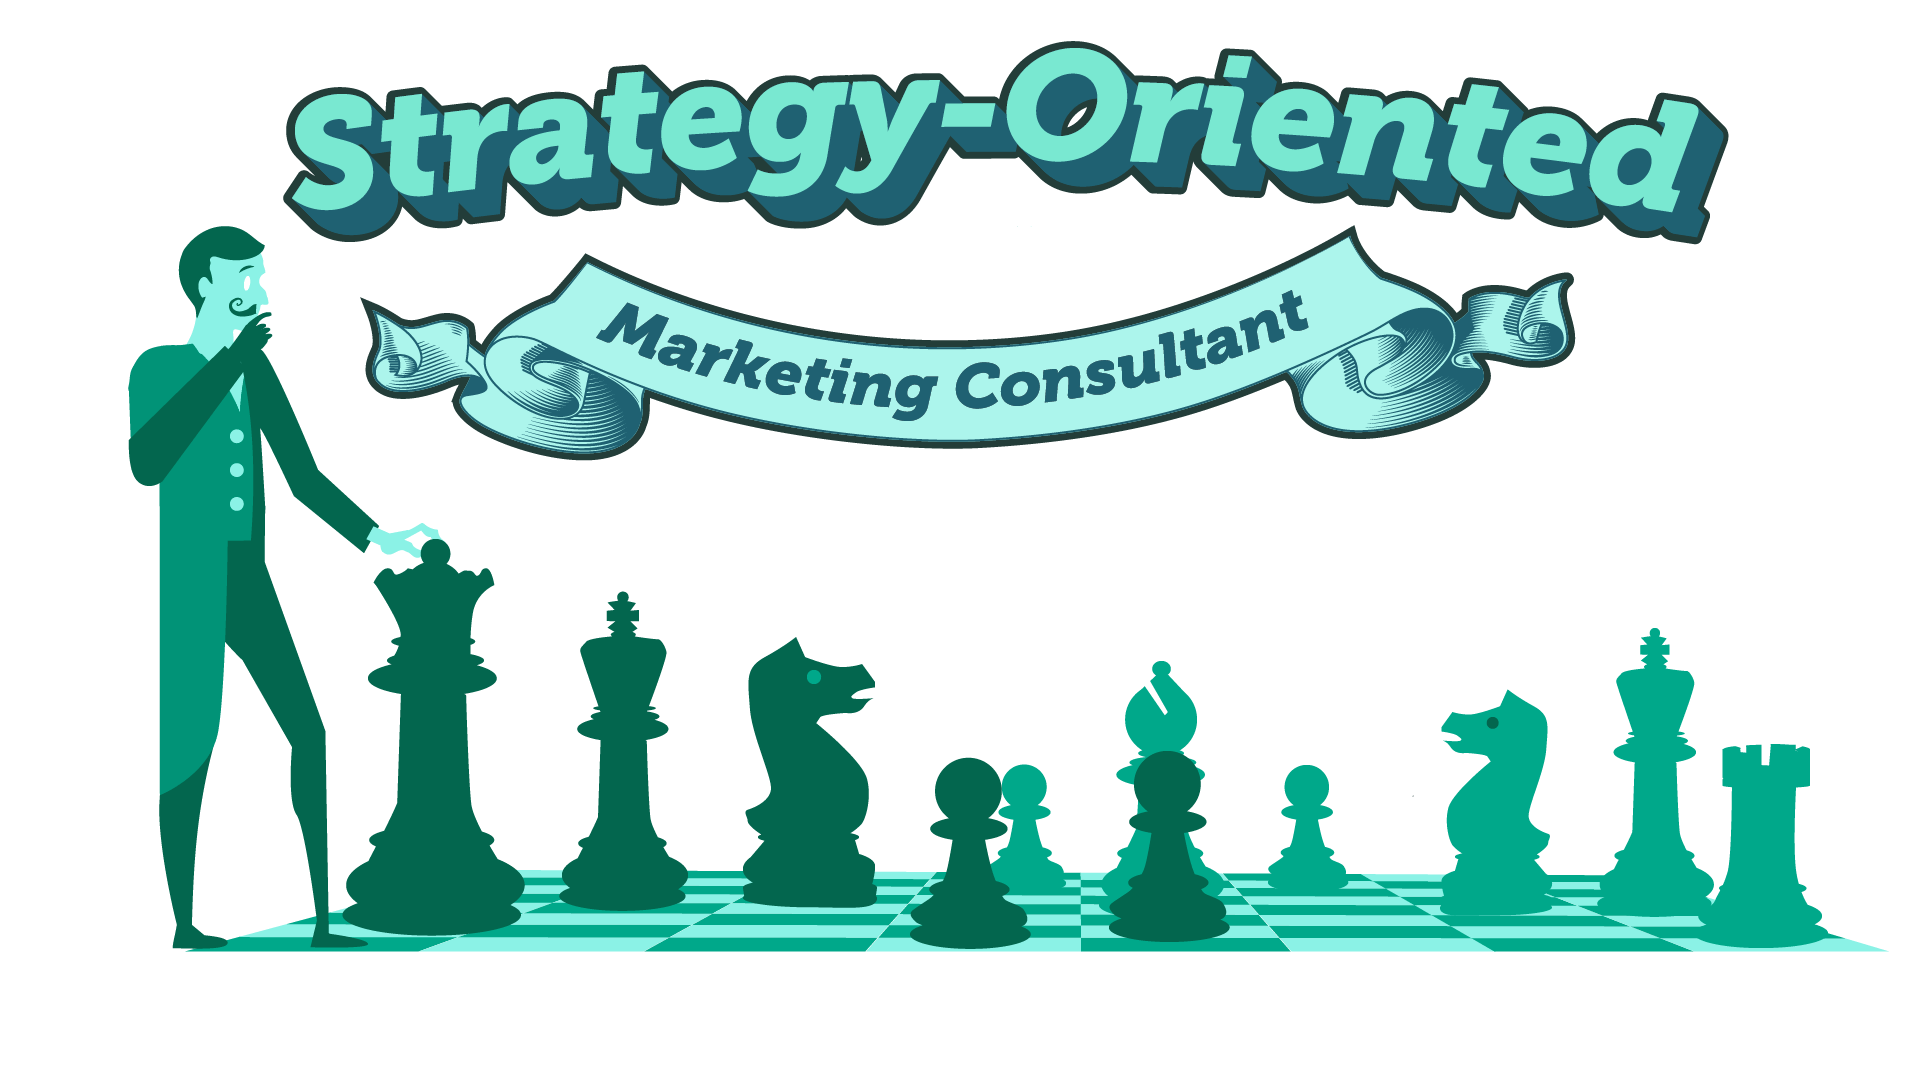 IMAGE: Strategy-Oriented Marketing Consultant